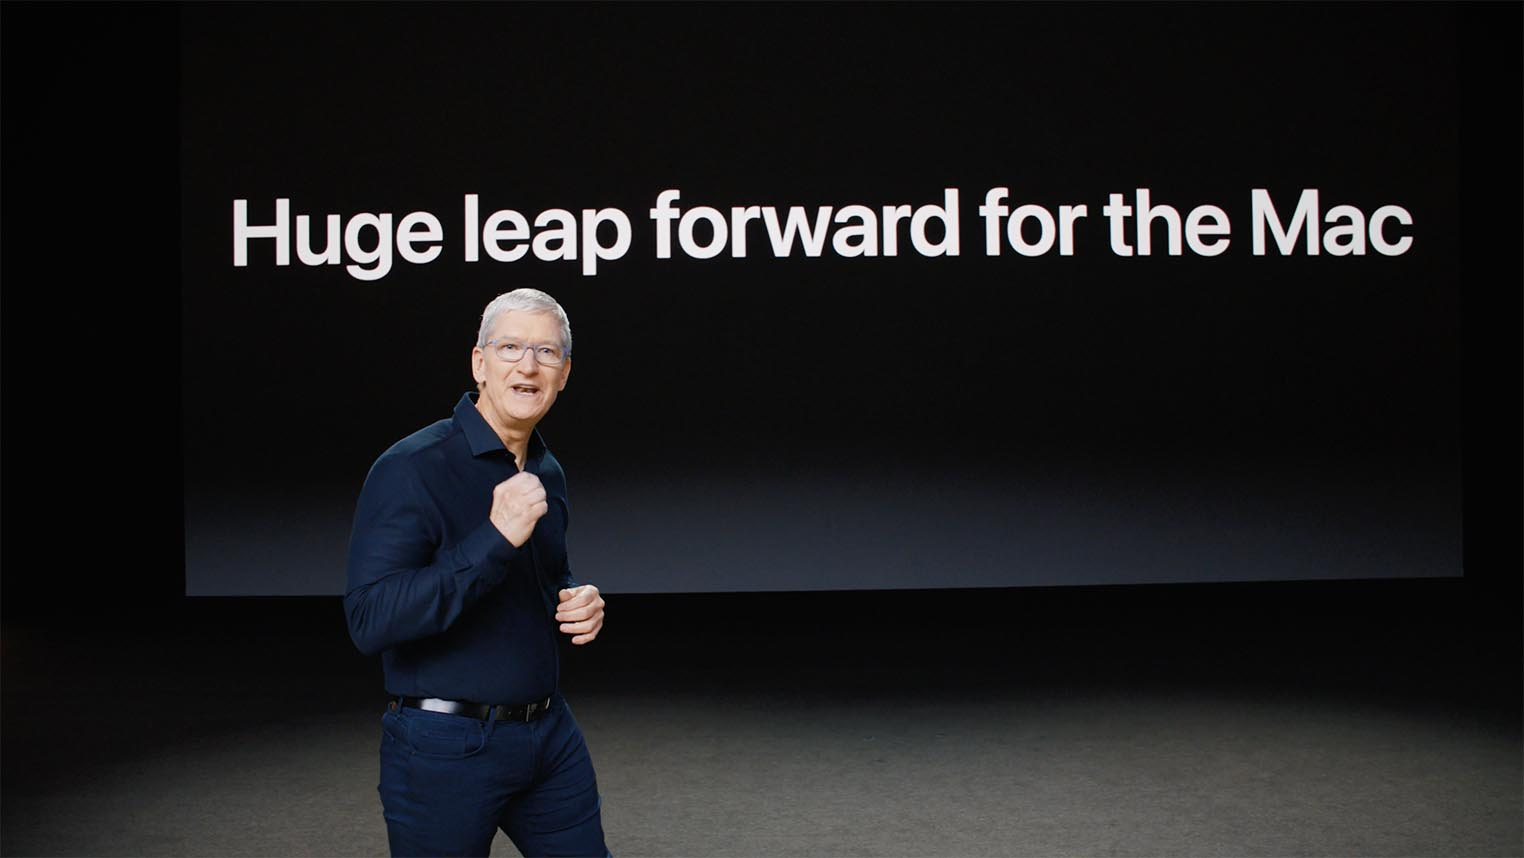 Apple Silicon Huge leap foward for the Mac